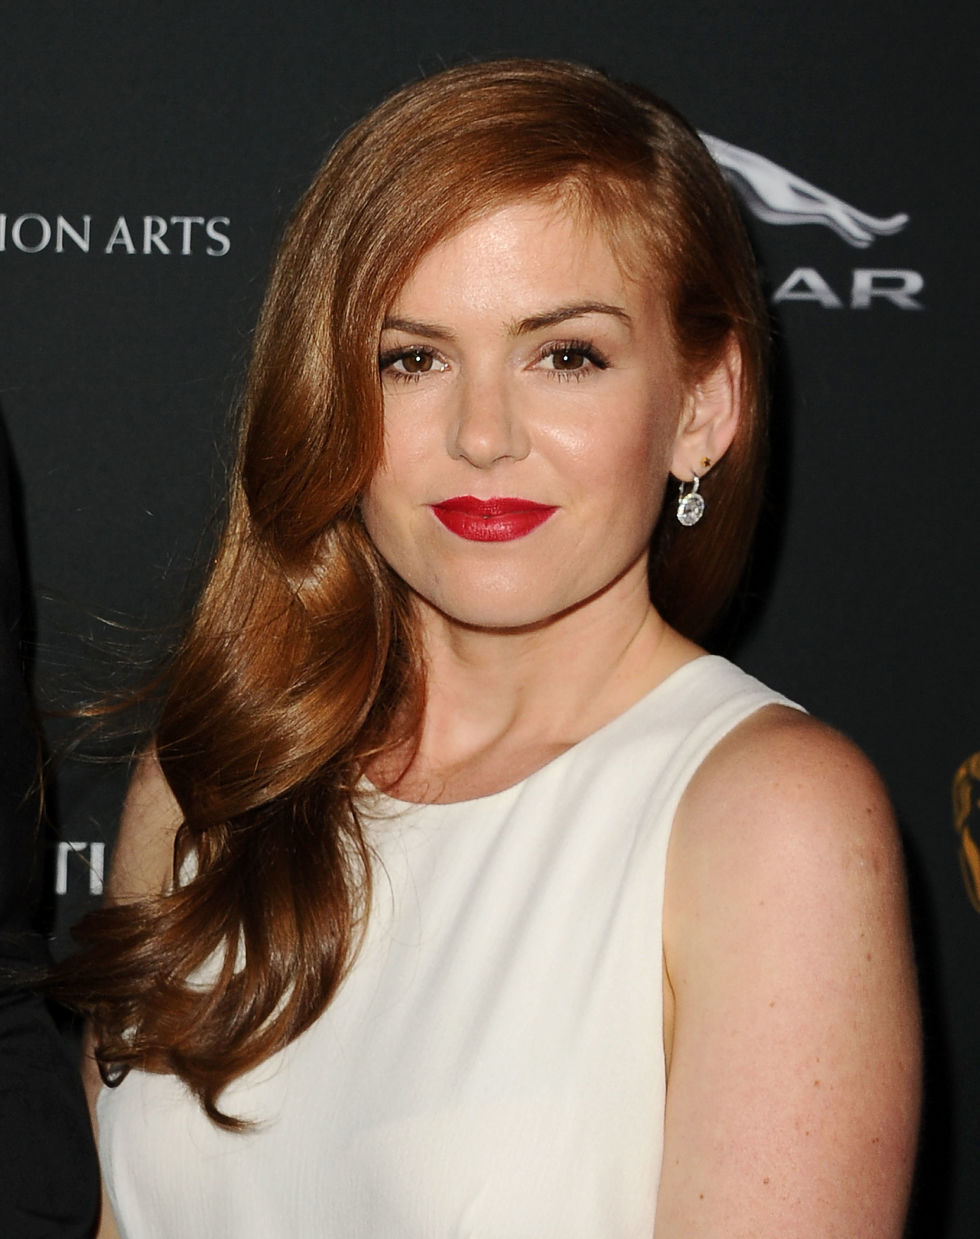 Stupendous 20 Best Auburn Hair Colors Celebrities With Red Brown Hair Hairstyles For Women Draintrainus